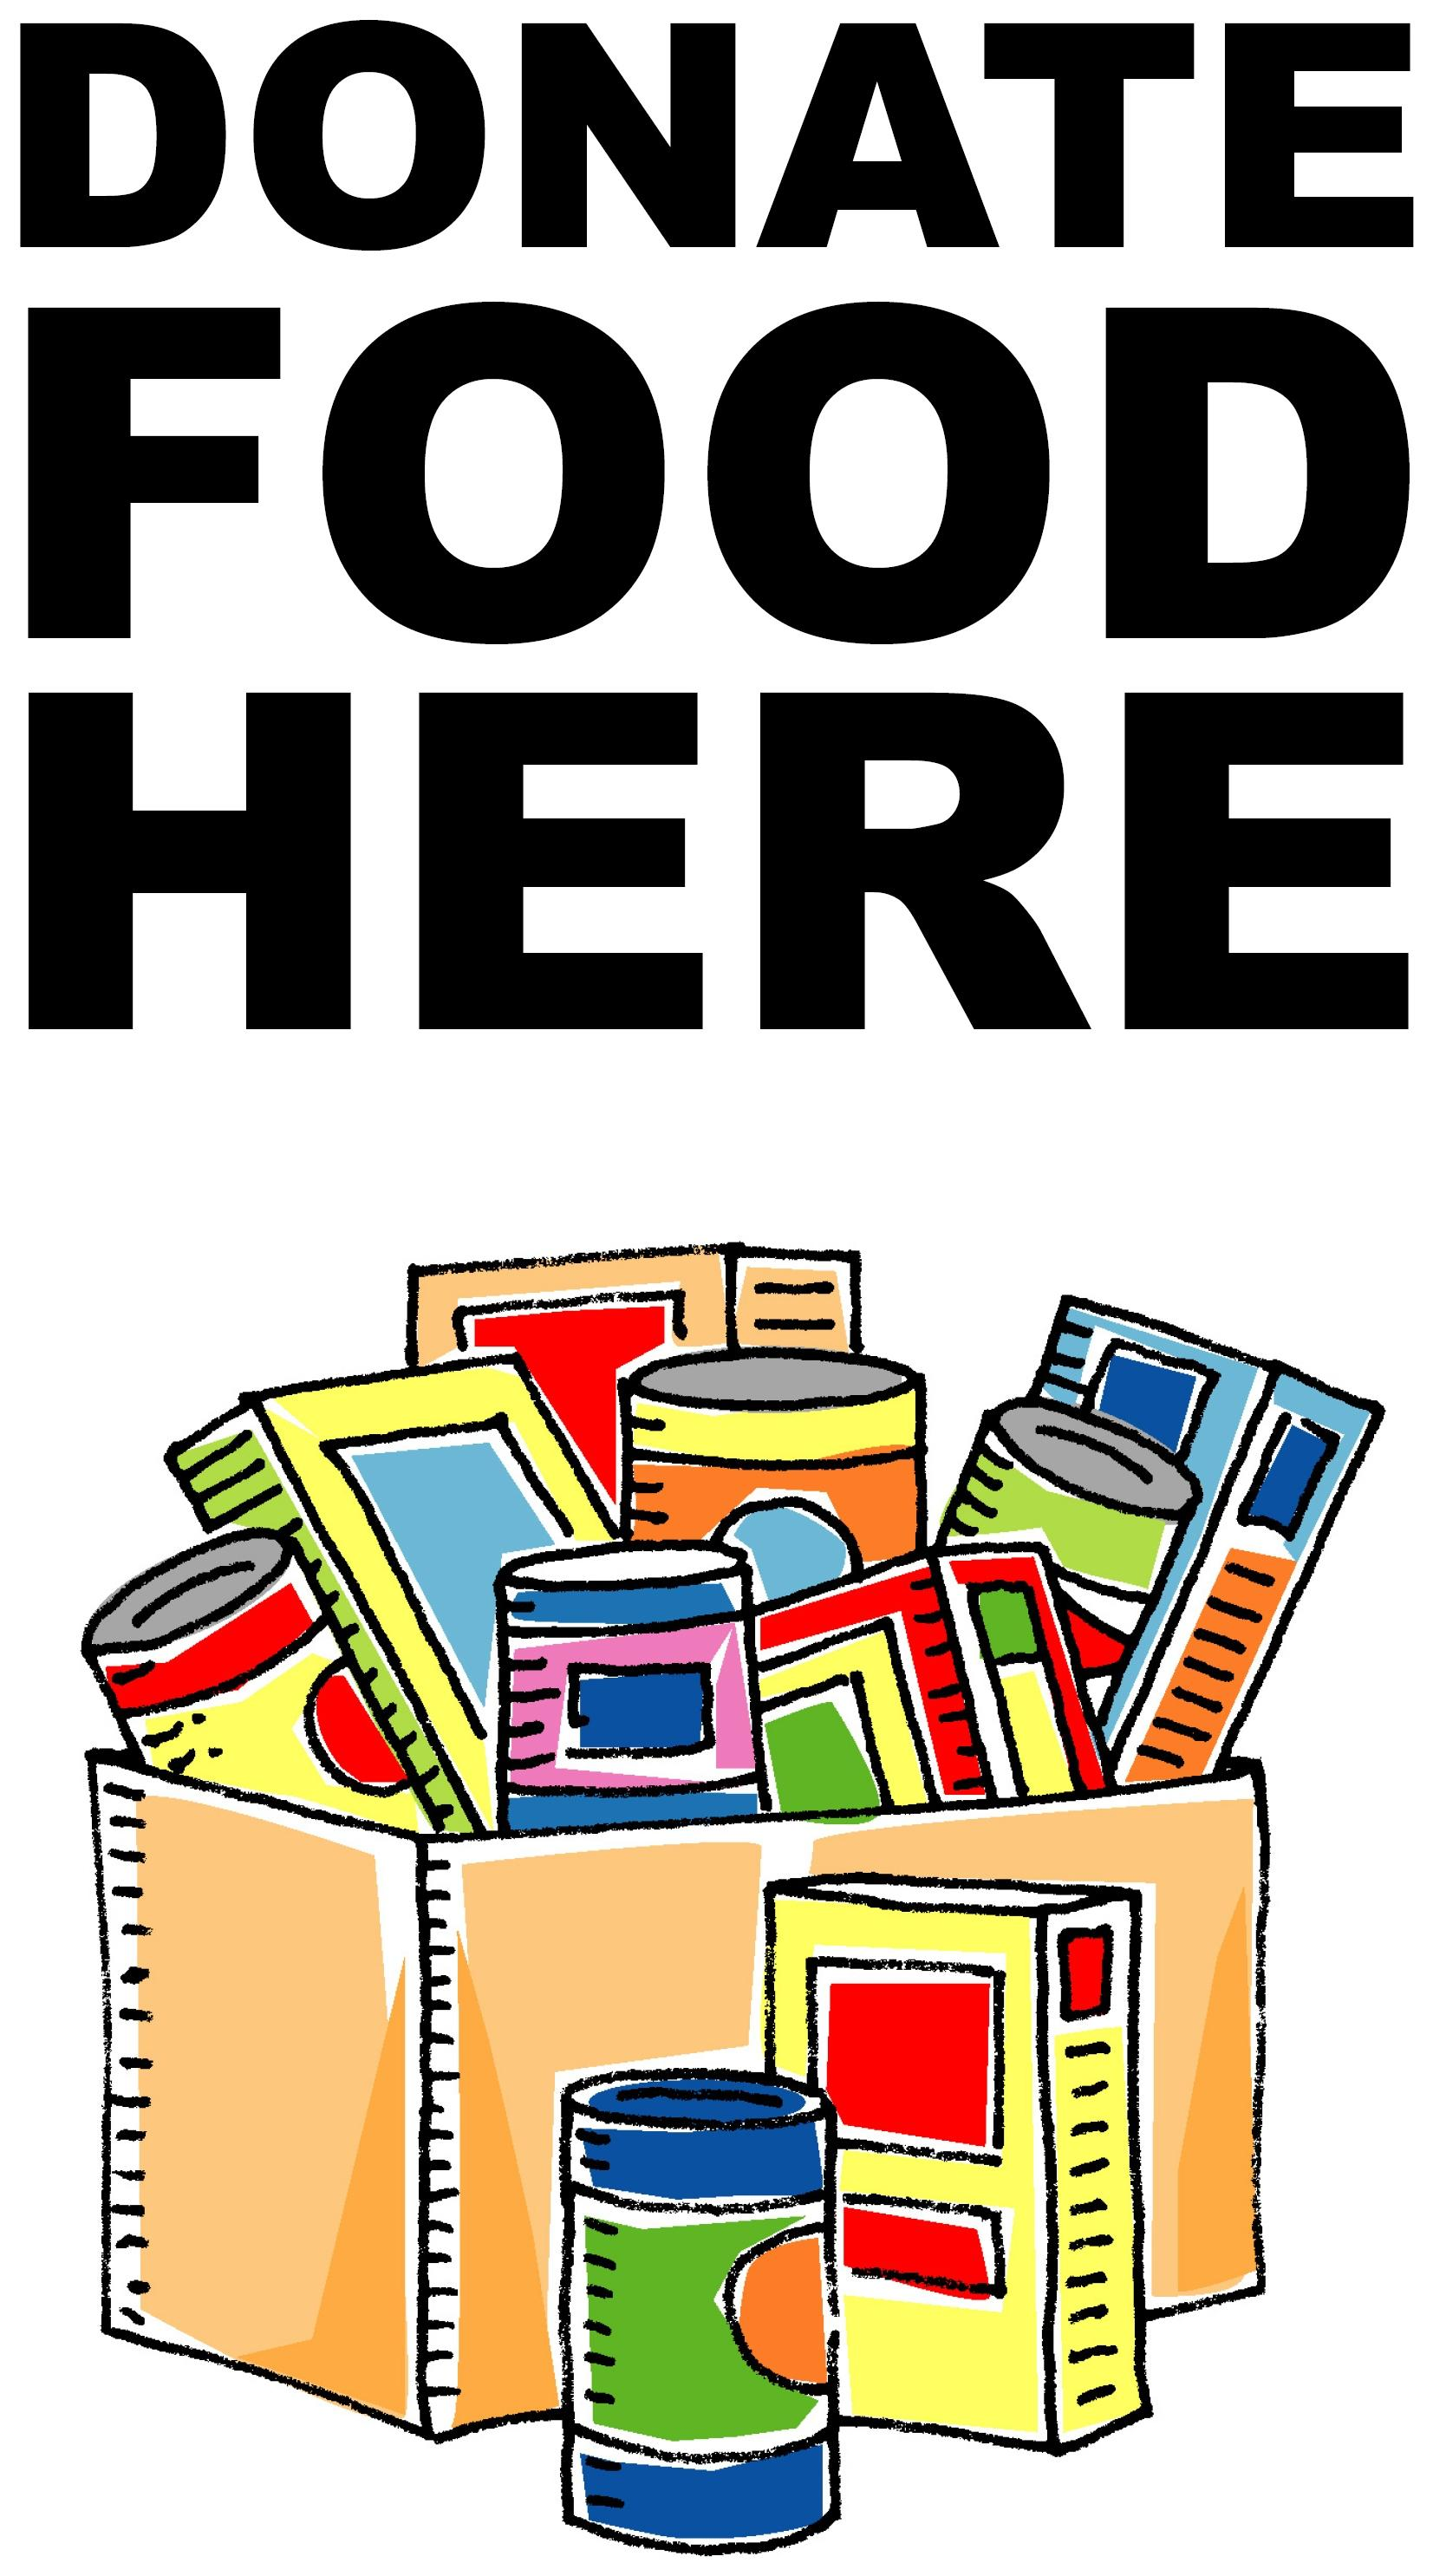 Canned food clip art food pantry donations clipart kid